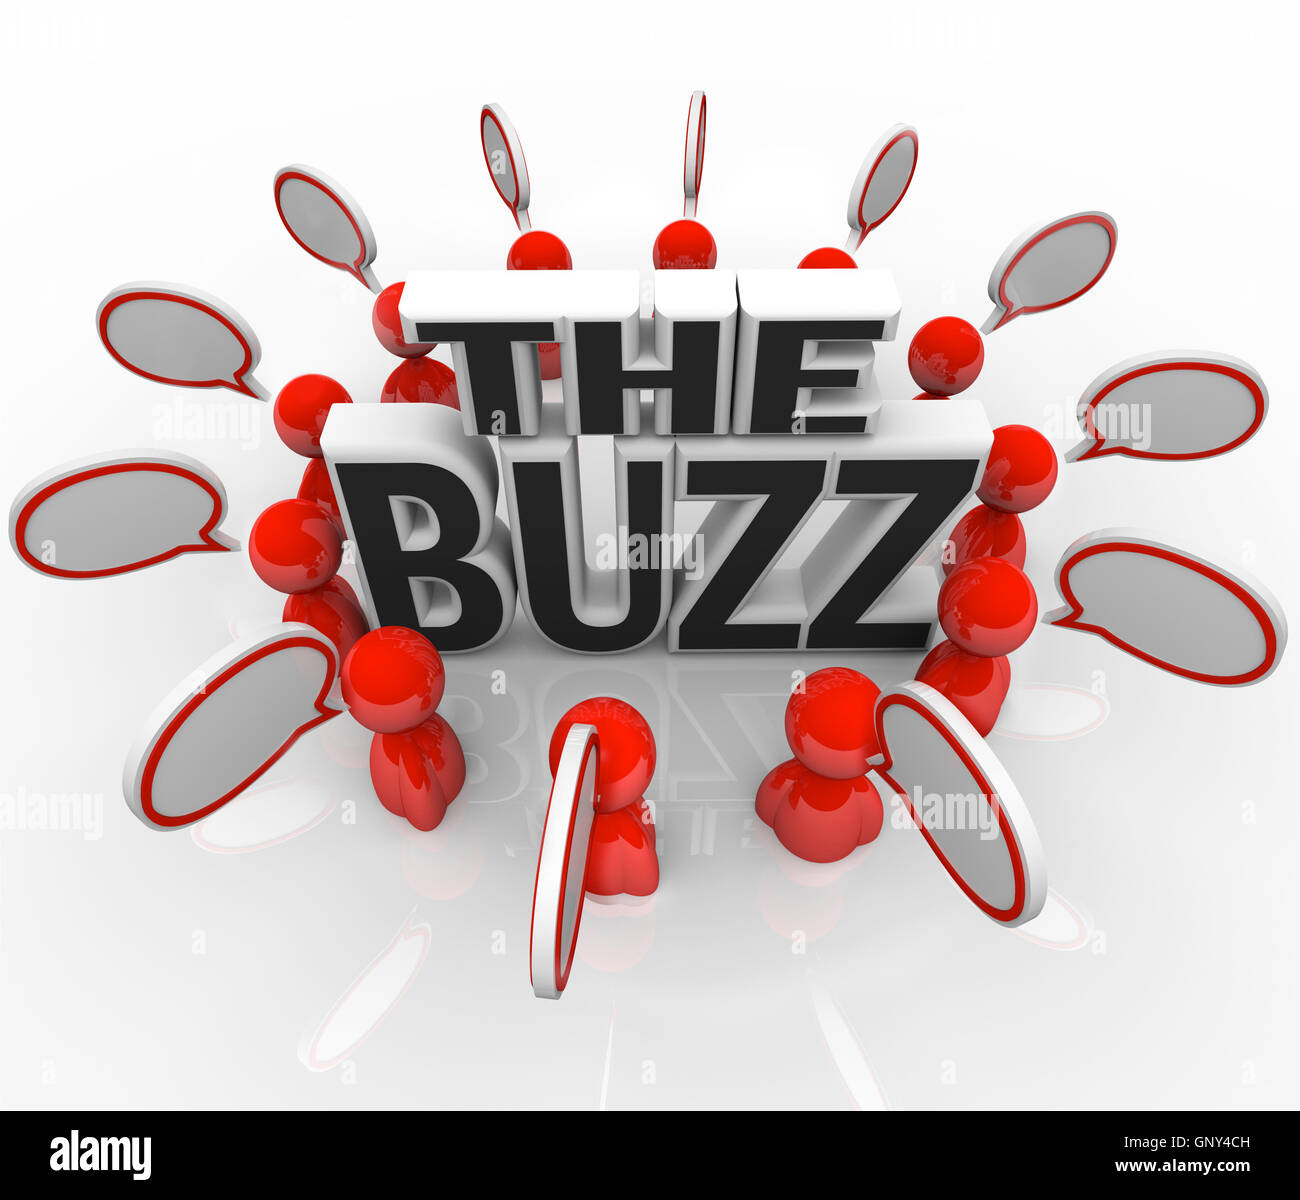 The Buzz People Talking in Speech Bubbles Latest News - Stock Image